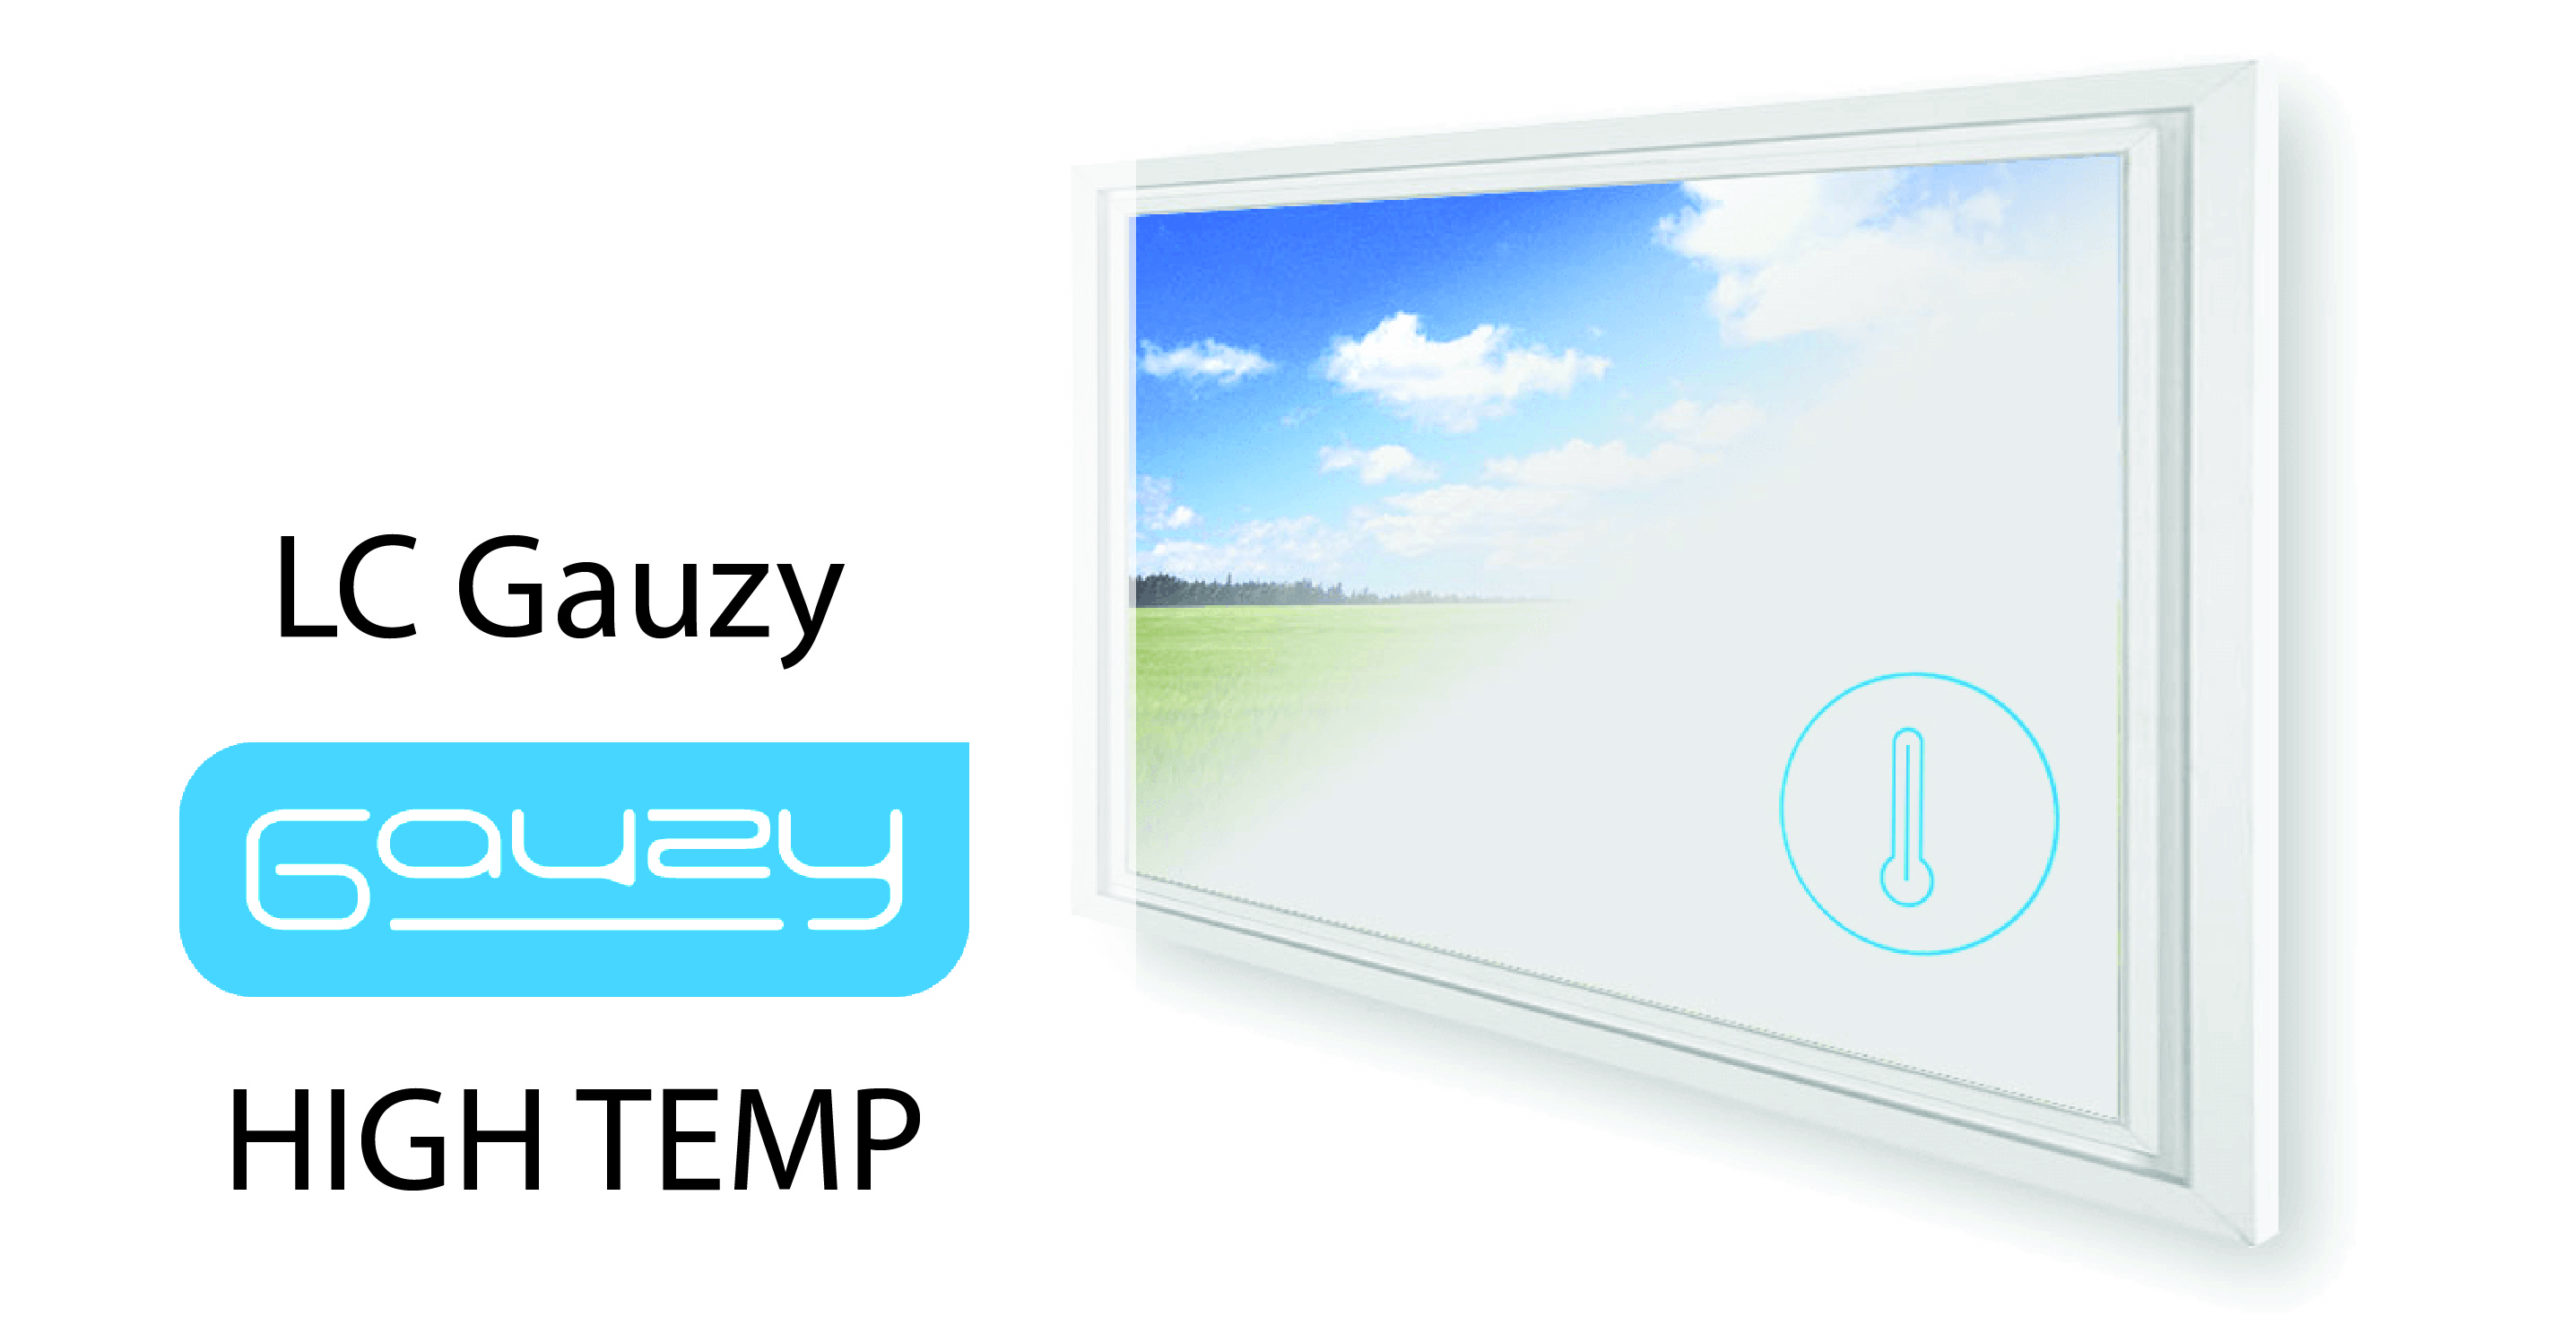 LC-gauzy-HIGHTEMP-01